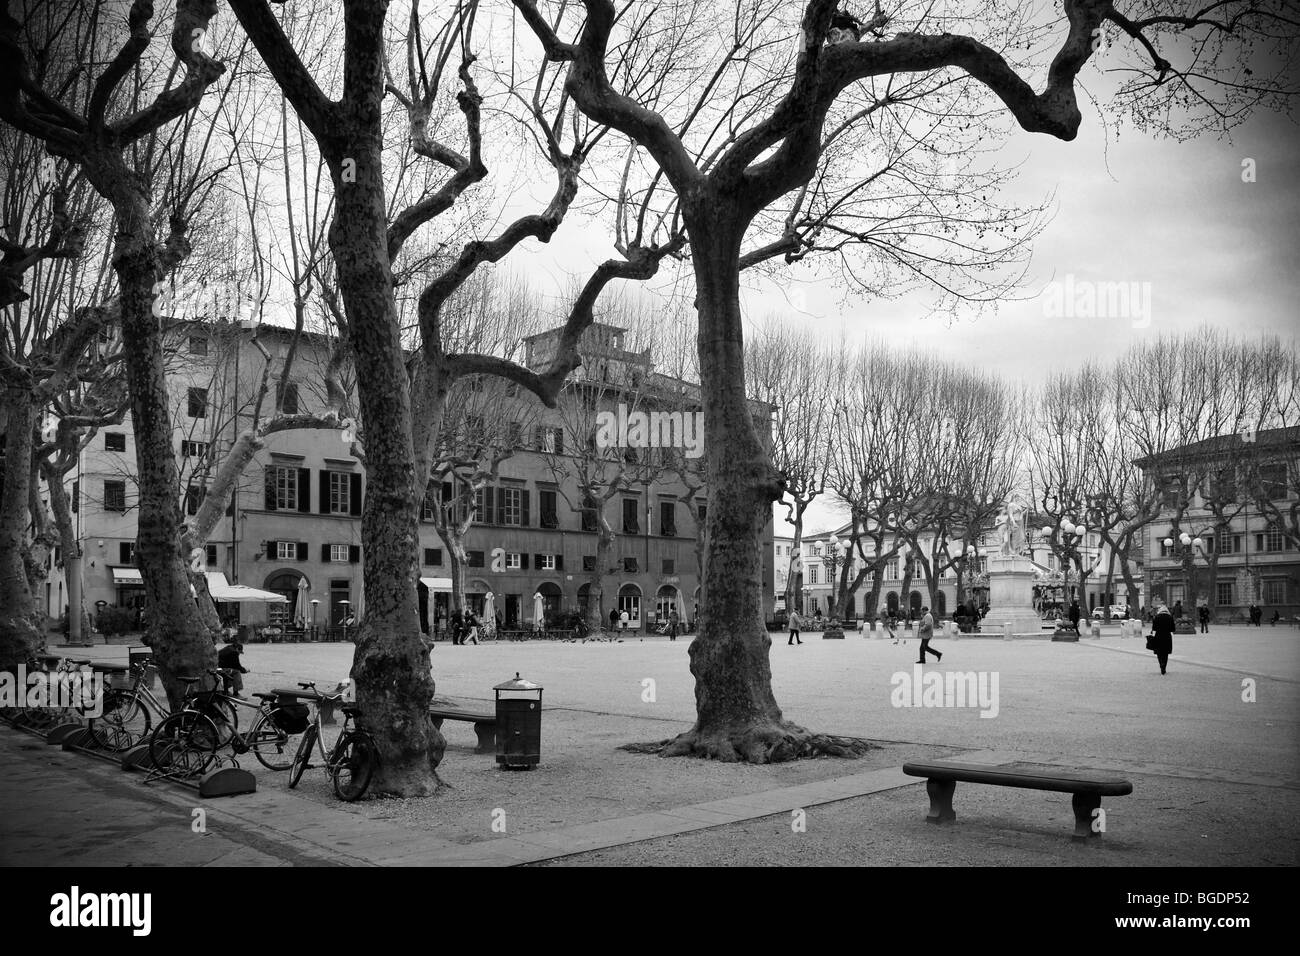 Early spring time at Piazza Napoleone (Piazza Grande) in Luccca, Tuscany, Italy. Stock Photo